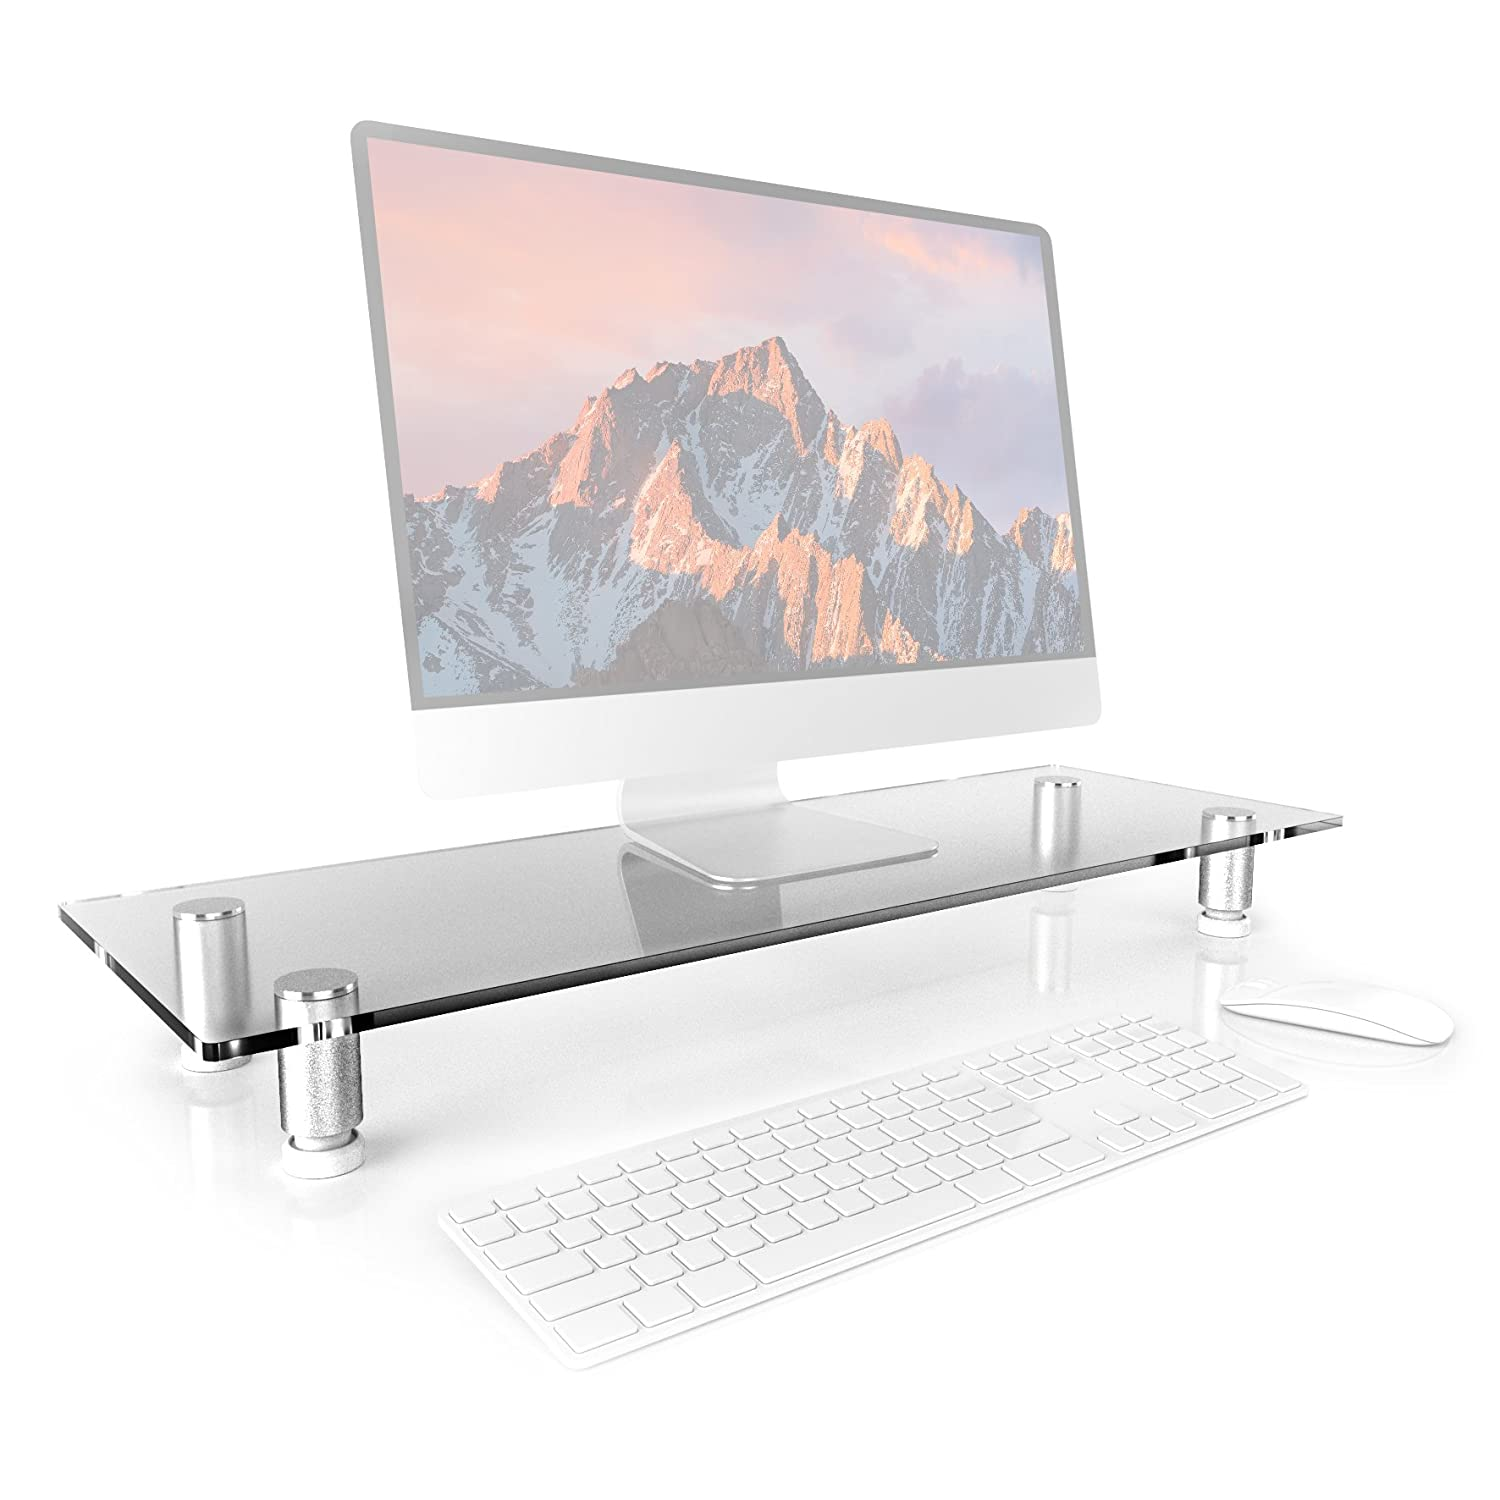 Duronic DM052-4 Monitor Stand Riser for Desk PC Computer Monitor | Laptop and TV Black Glass